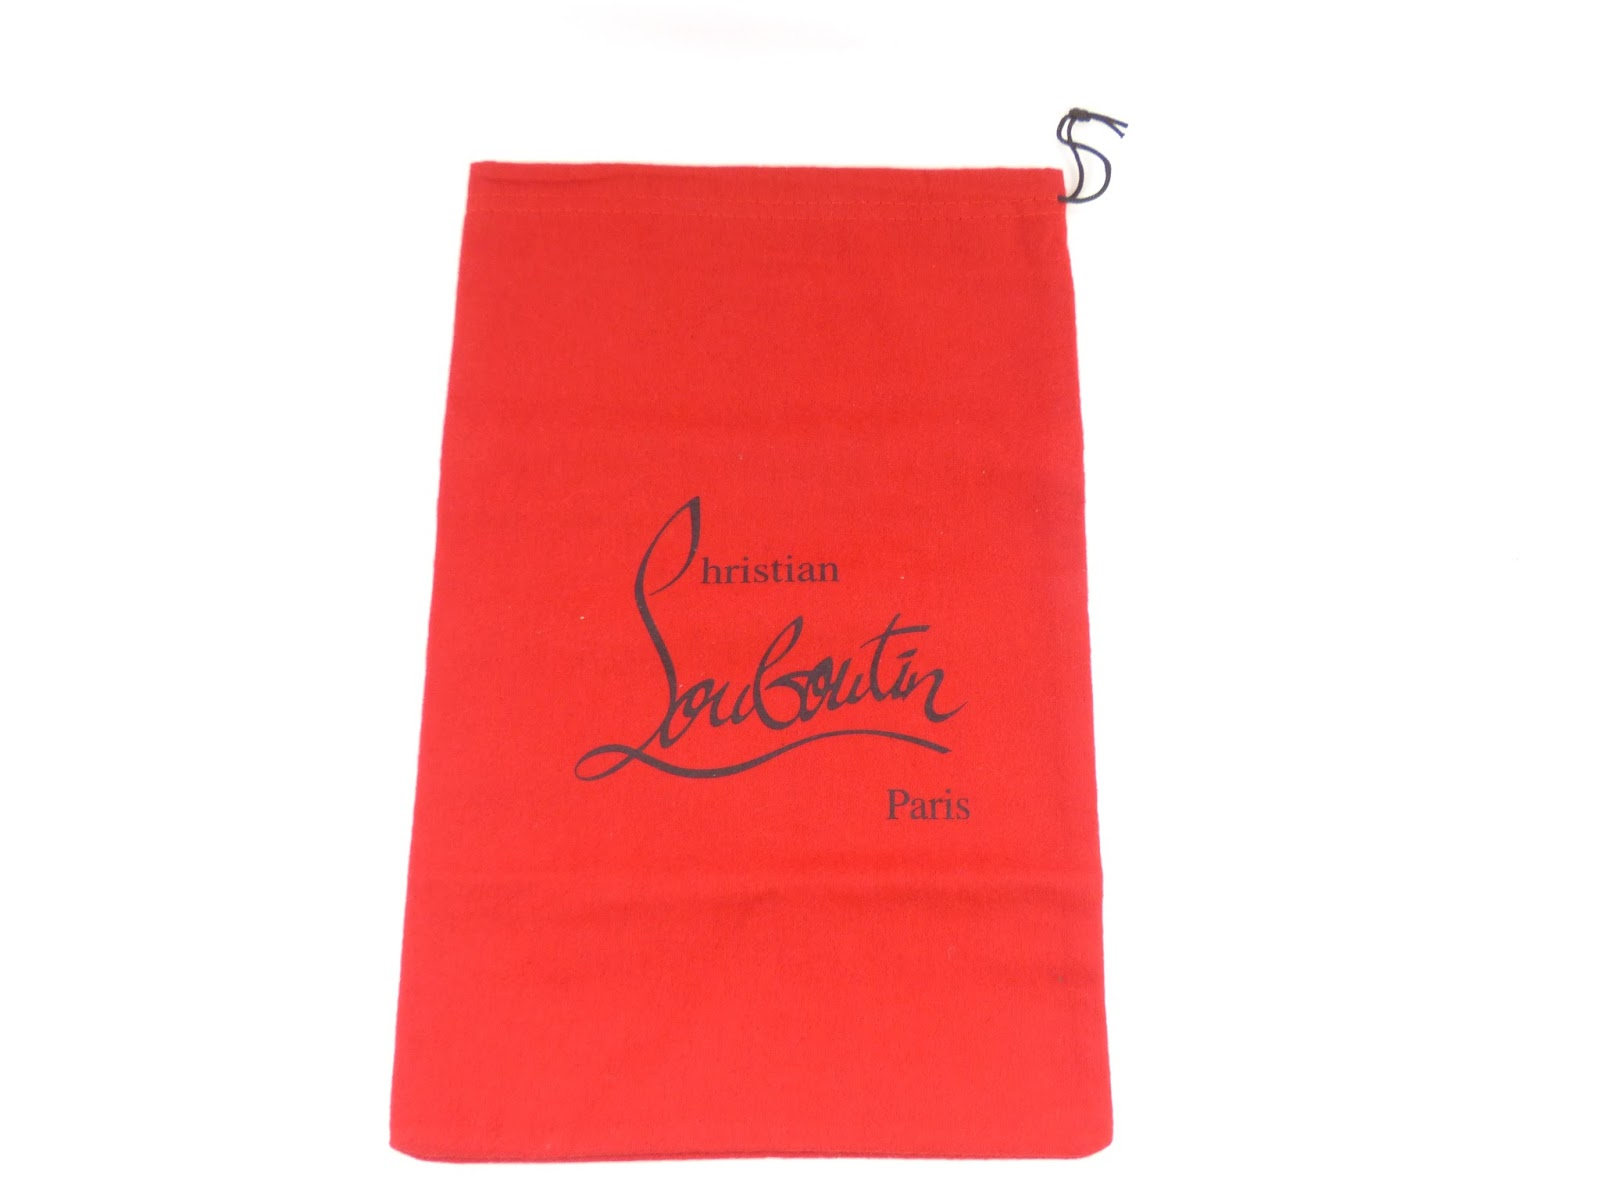 7d03151f7477 The Christian Louboutin logo should be straight and in the middle of the  dustbag and heeltip bag. Replica dustbags often have the logo slanted.